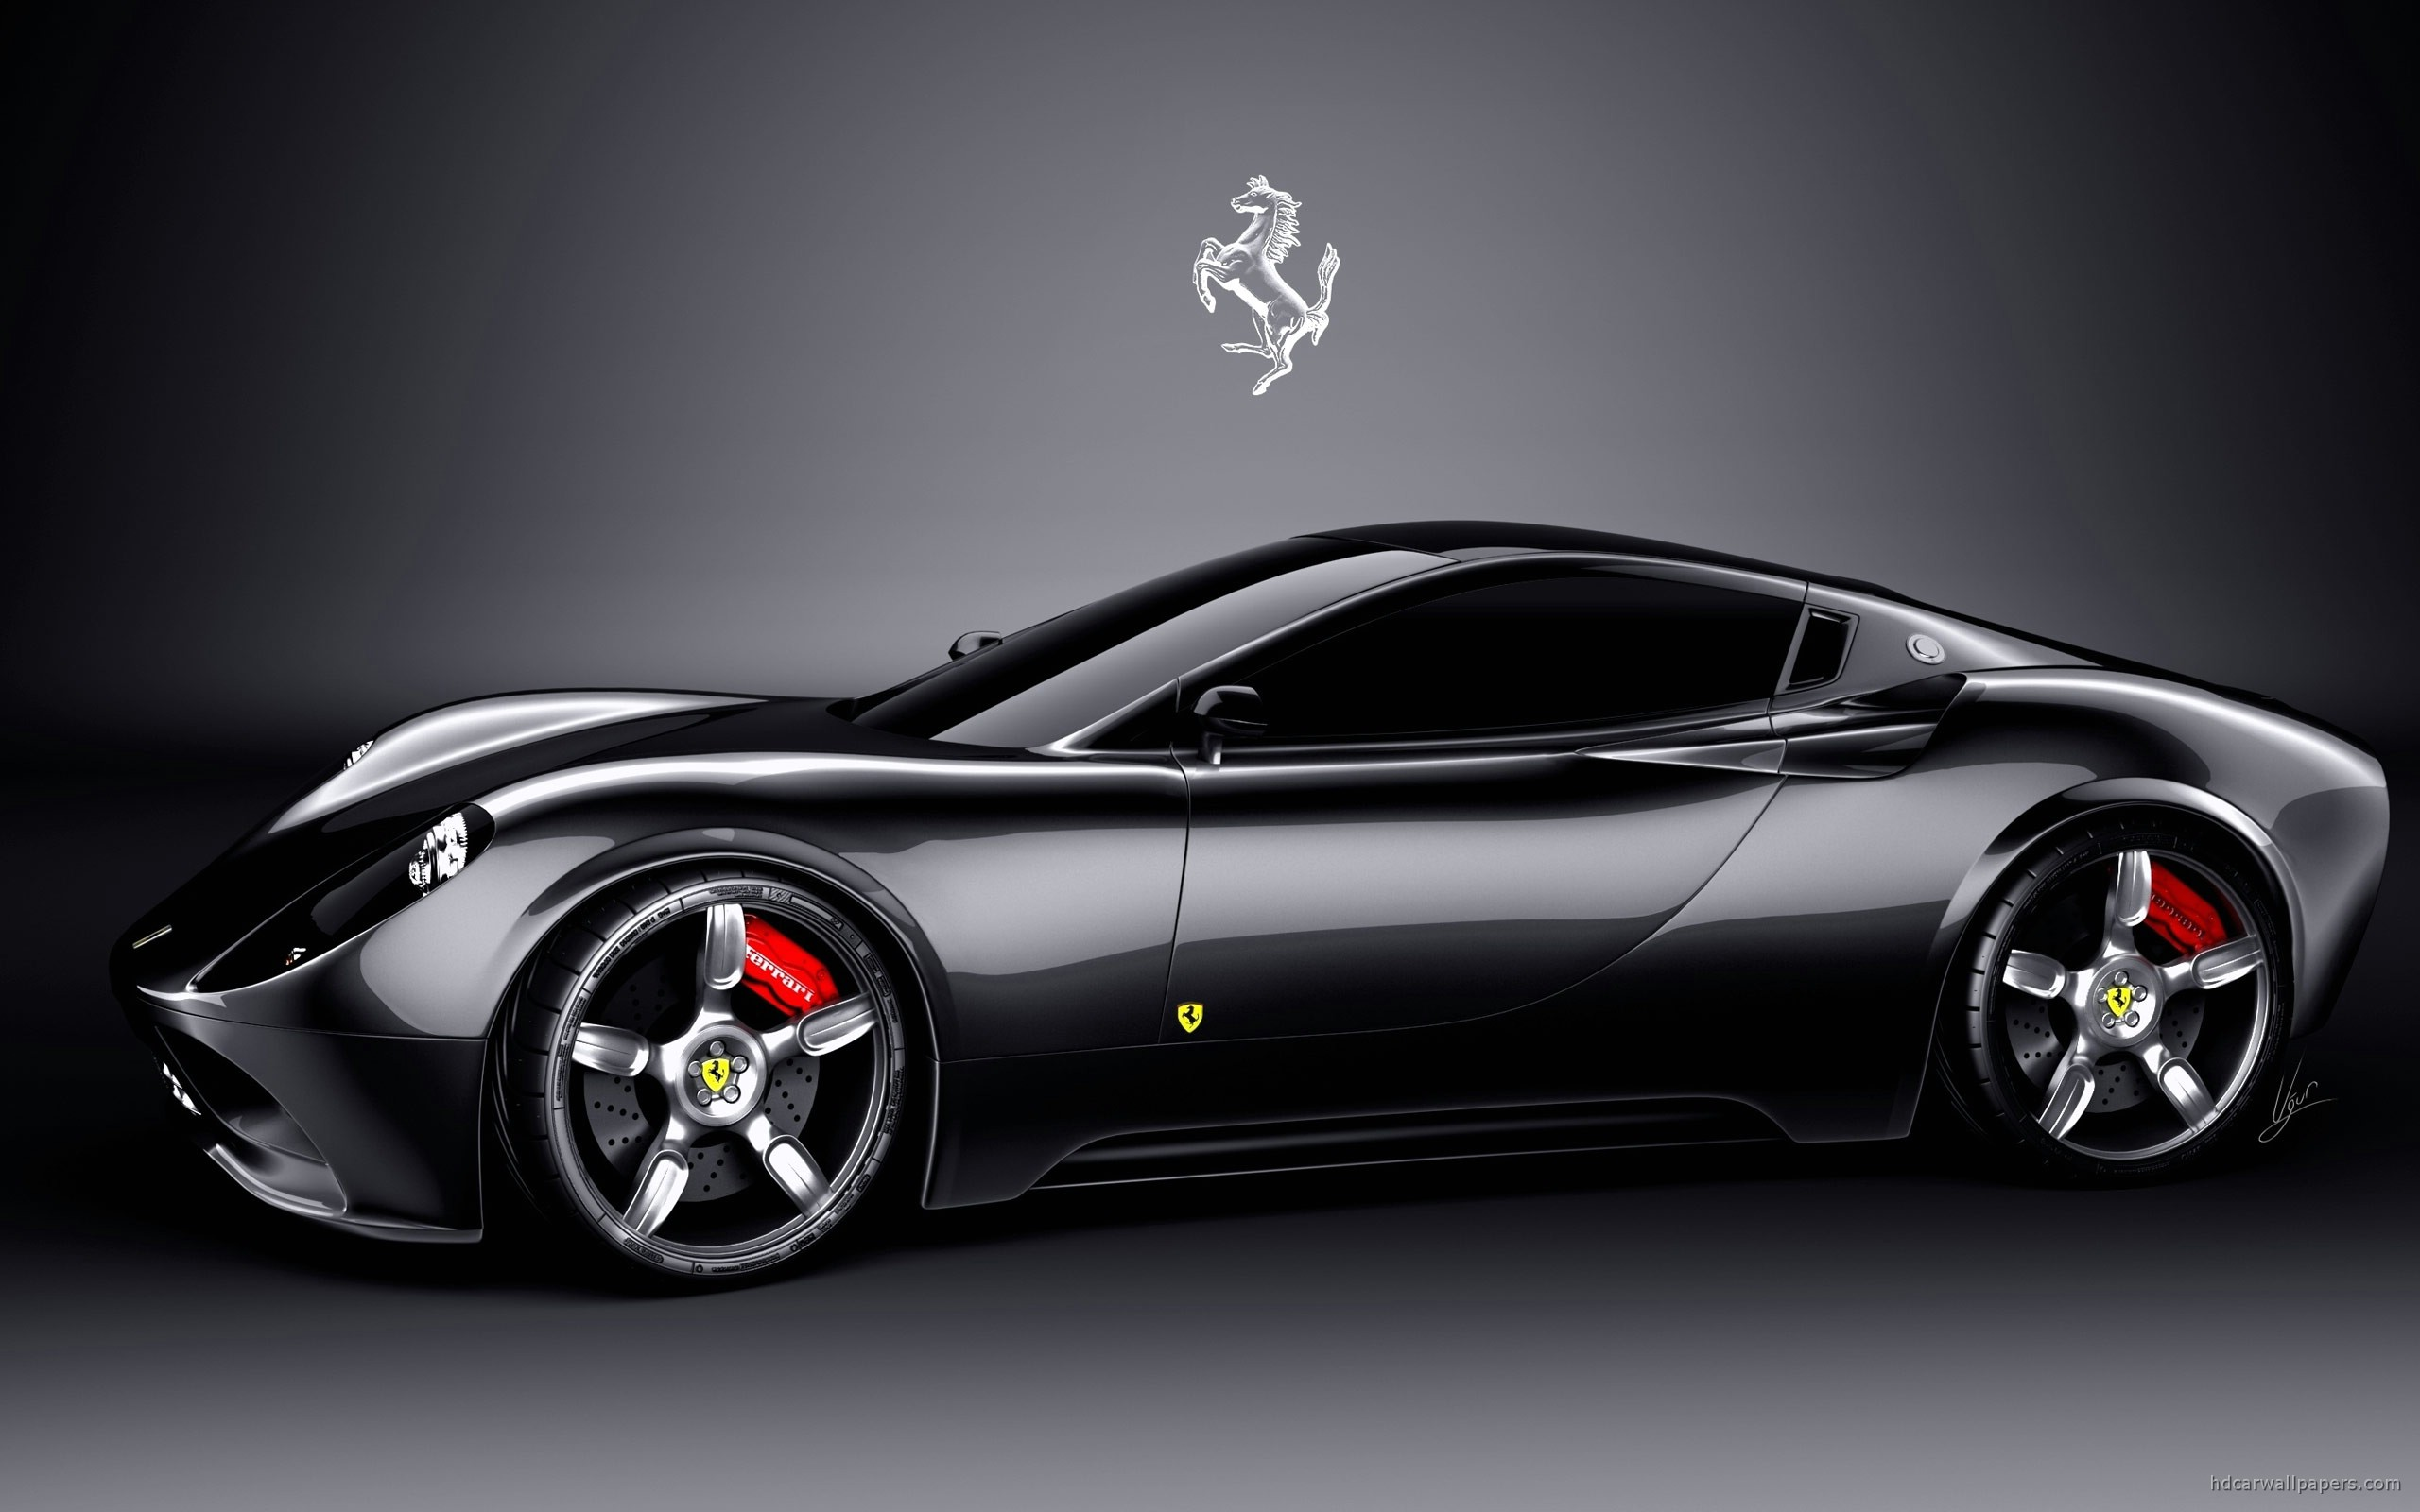 Metalic Ferrari HD Wallpaper - Metalic Ferrari HD Wallpaper